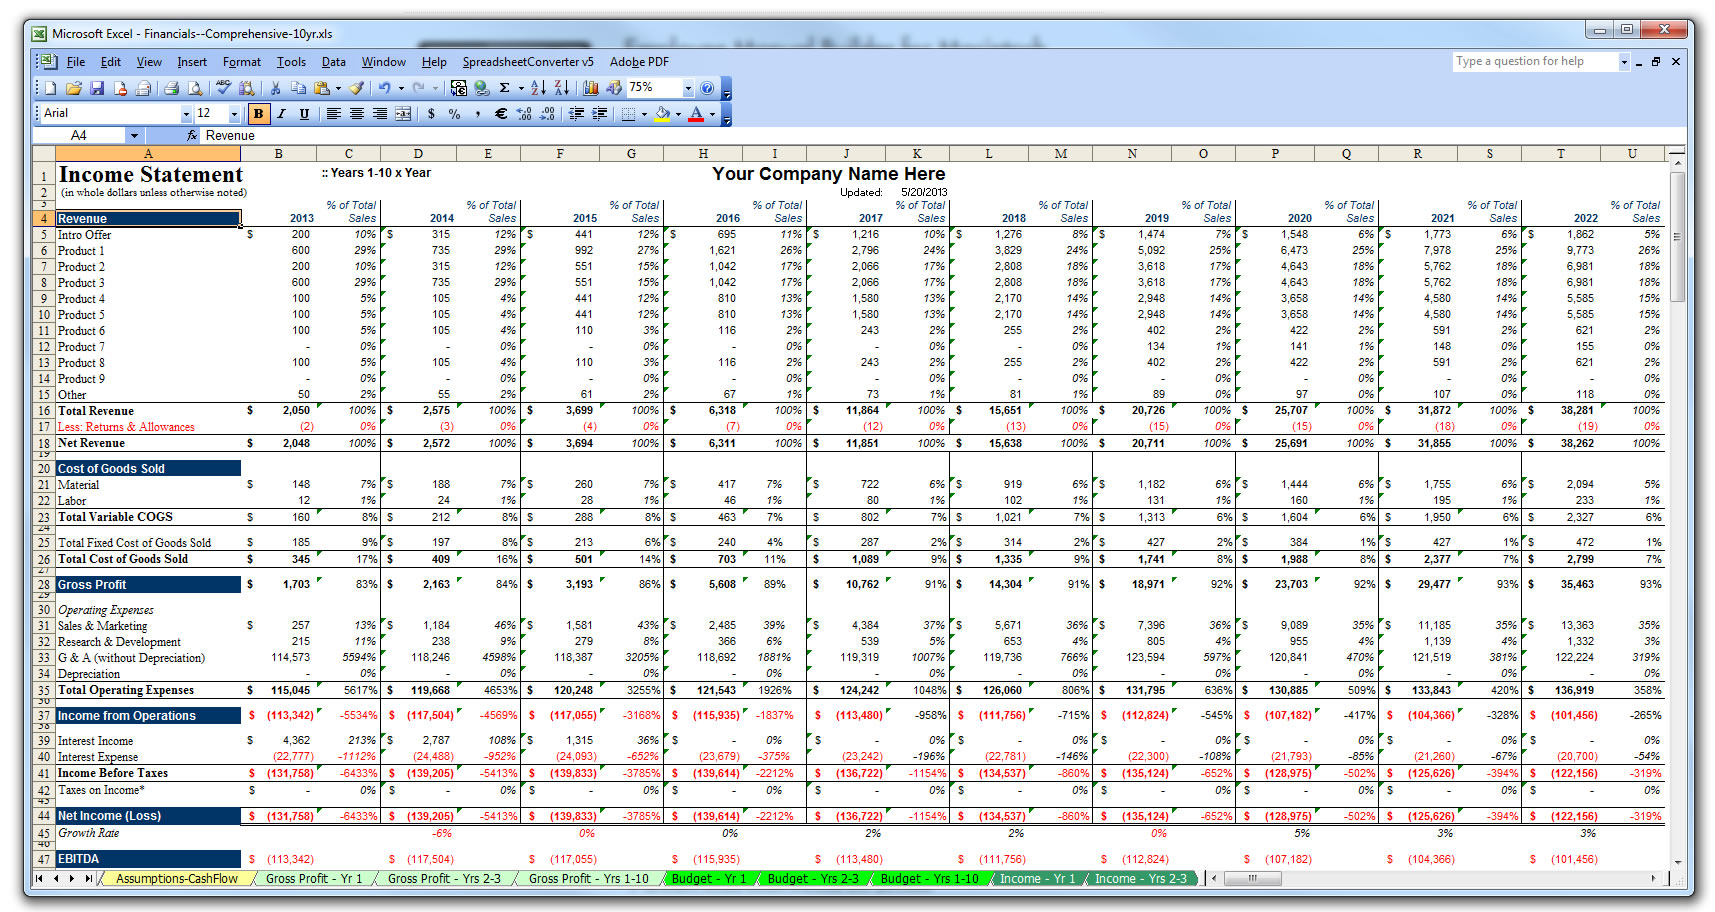 10-year business plan financial budget projection model in Excel ...